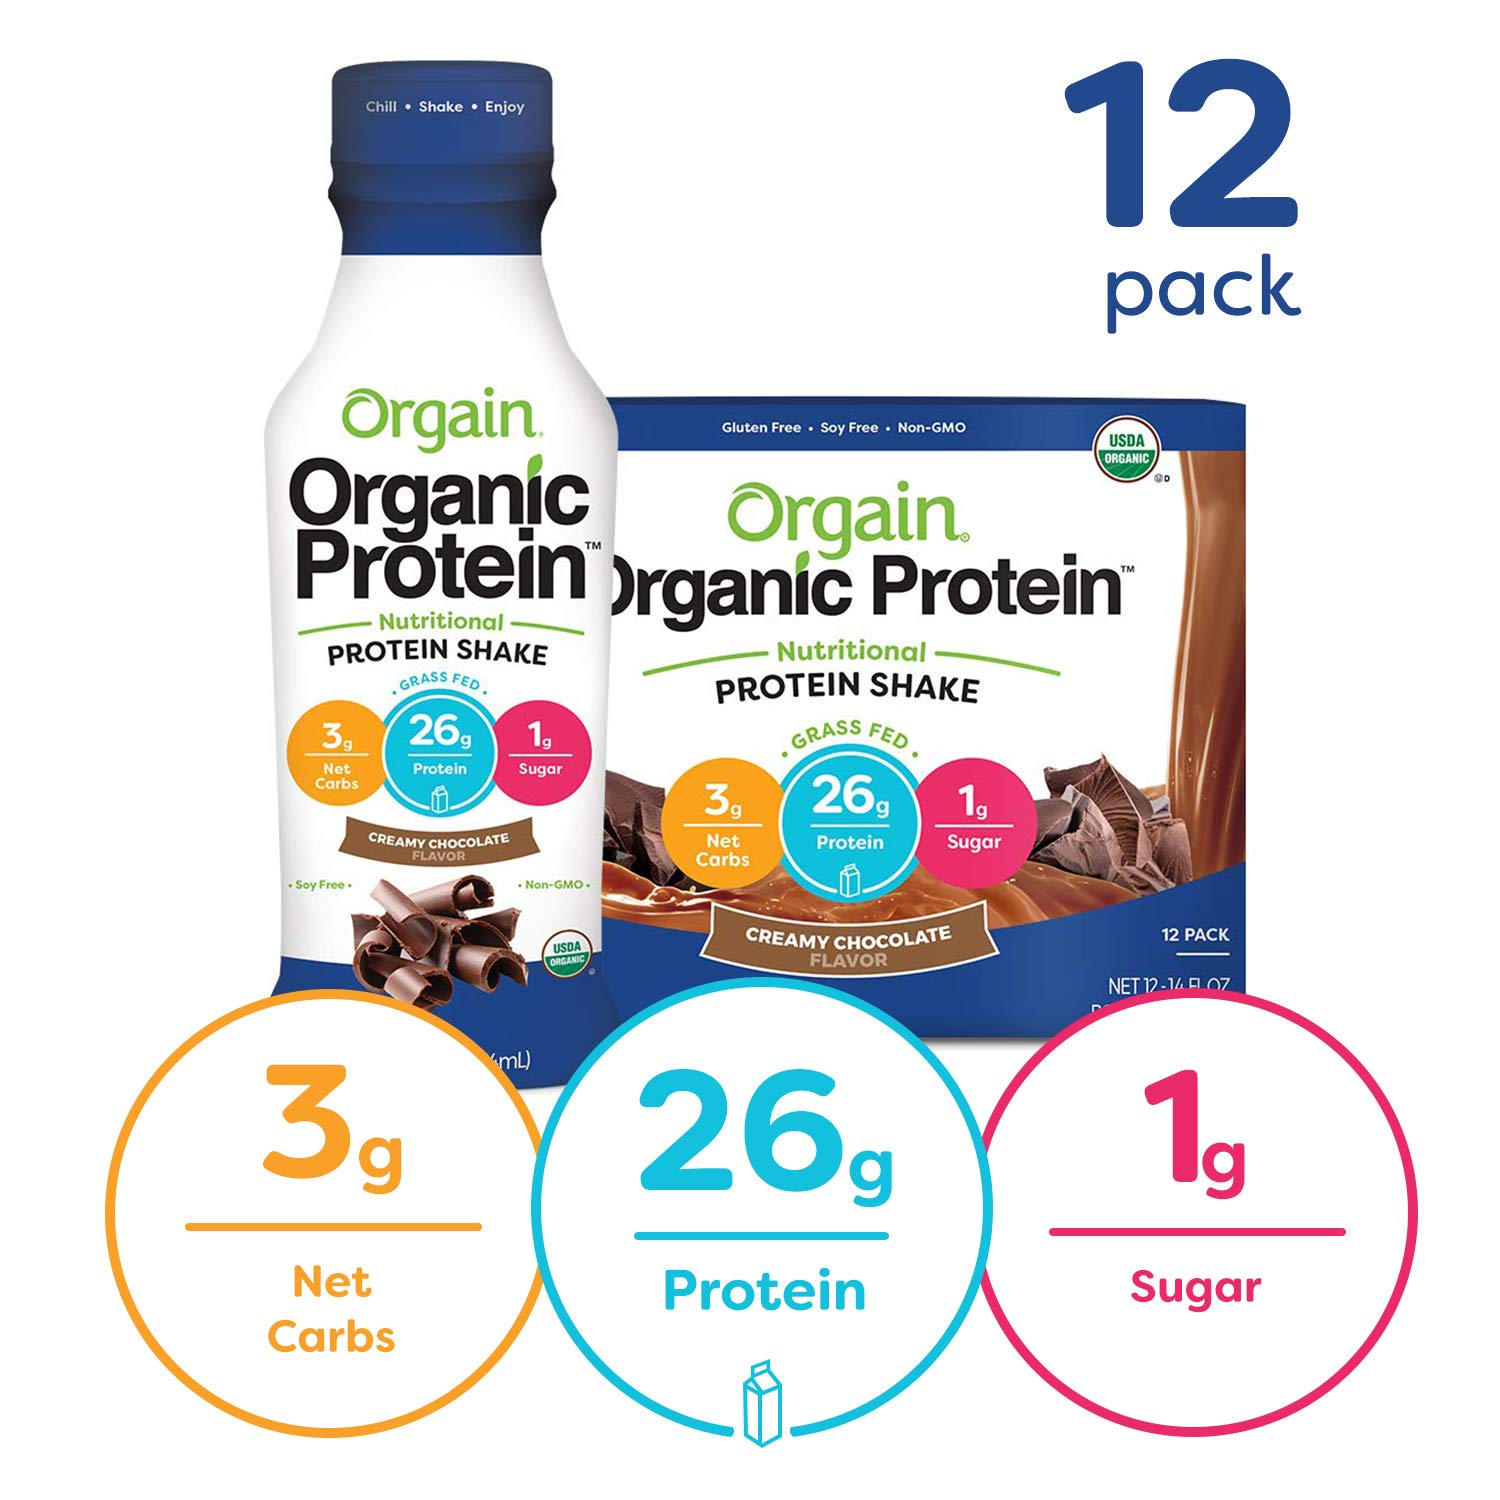 Orgain Organic 26g Grass Fed Whey Protein Shake, Creamy Chocolate - Meal Replacement, Ready to Drink, Low Net Carbs, No Sugar Added, Gluten Free, Non-GMO, 14 Ounce, 12 Count by Orgain